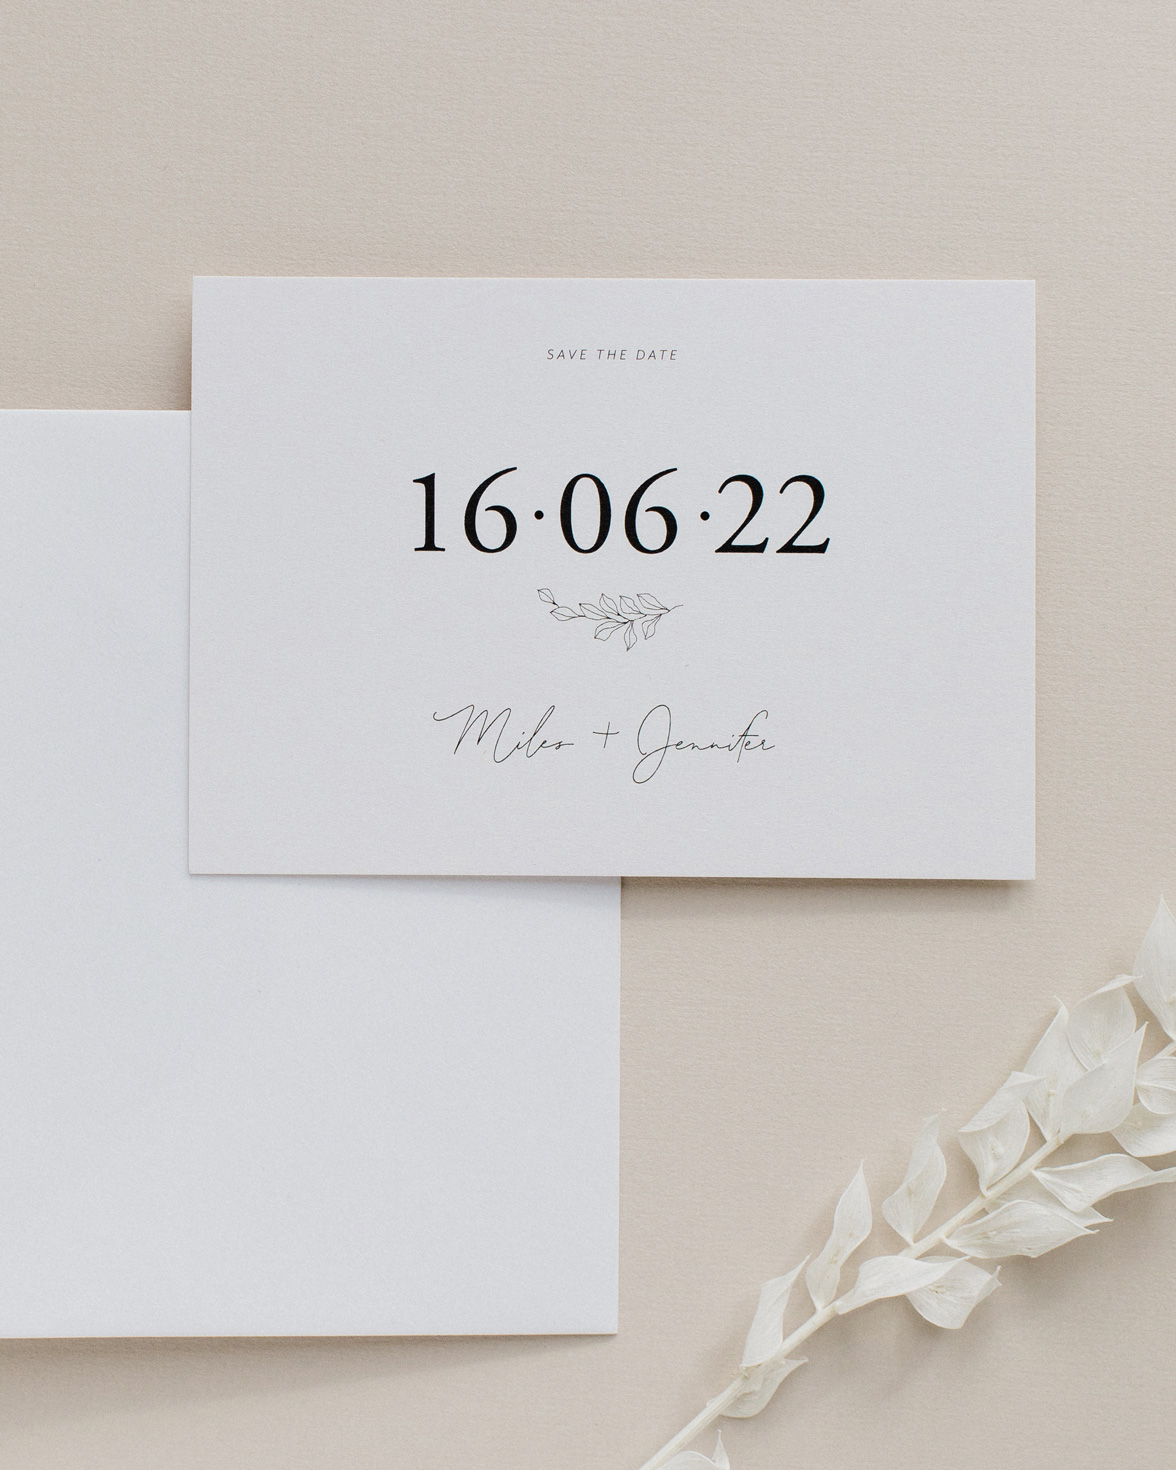 Fleur Classique wedding save the date. Natural tones with hand drawn flower motif